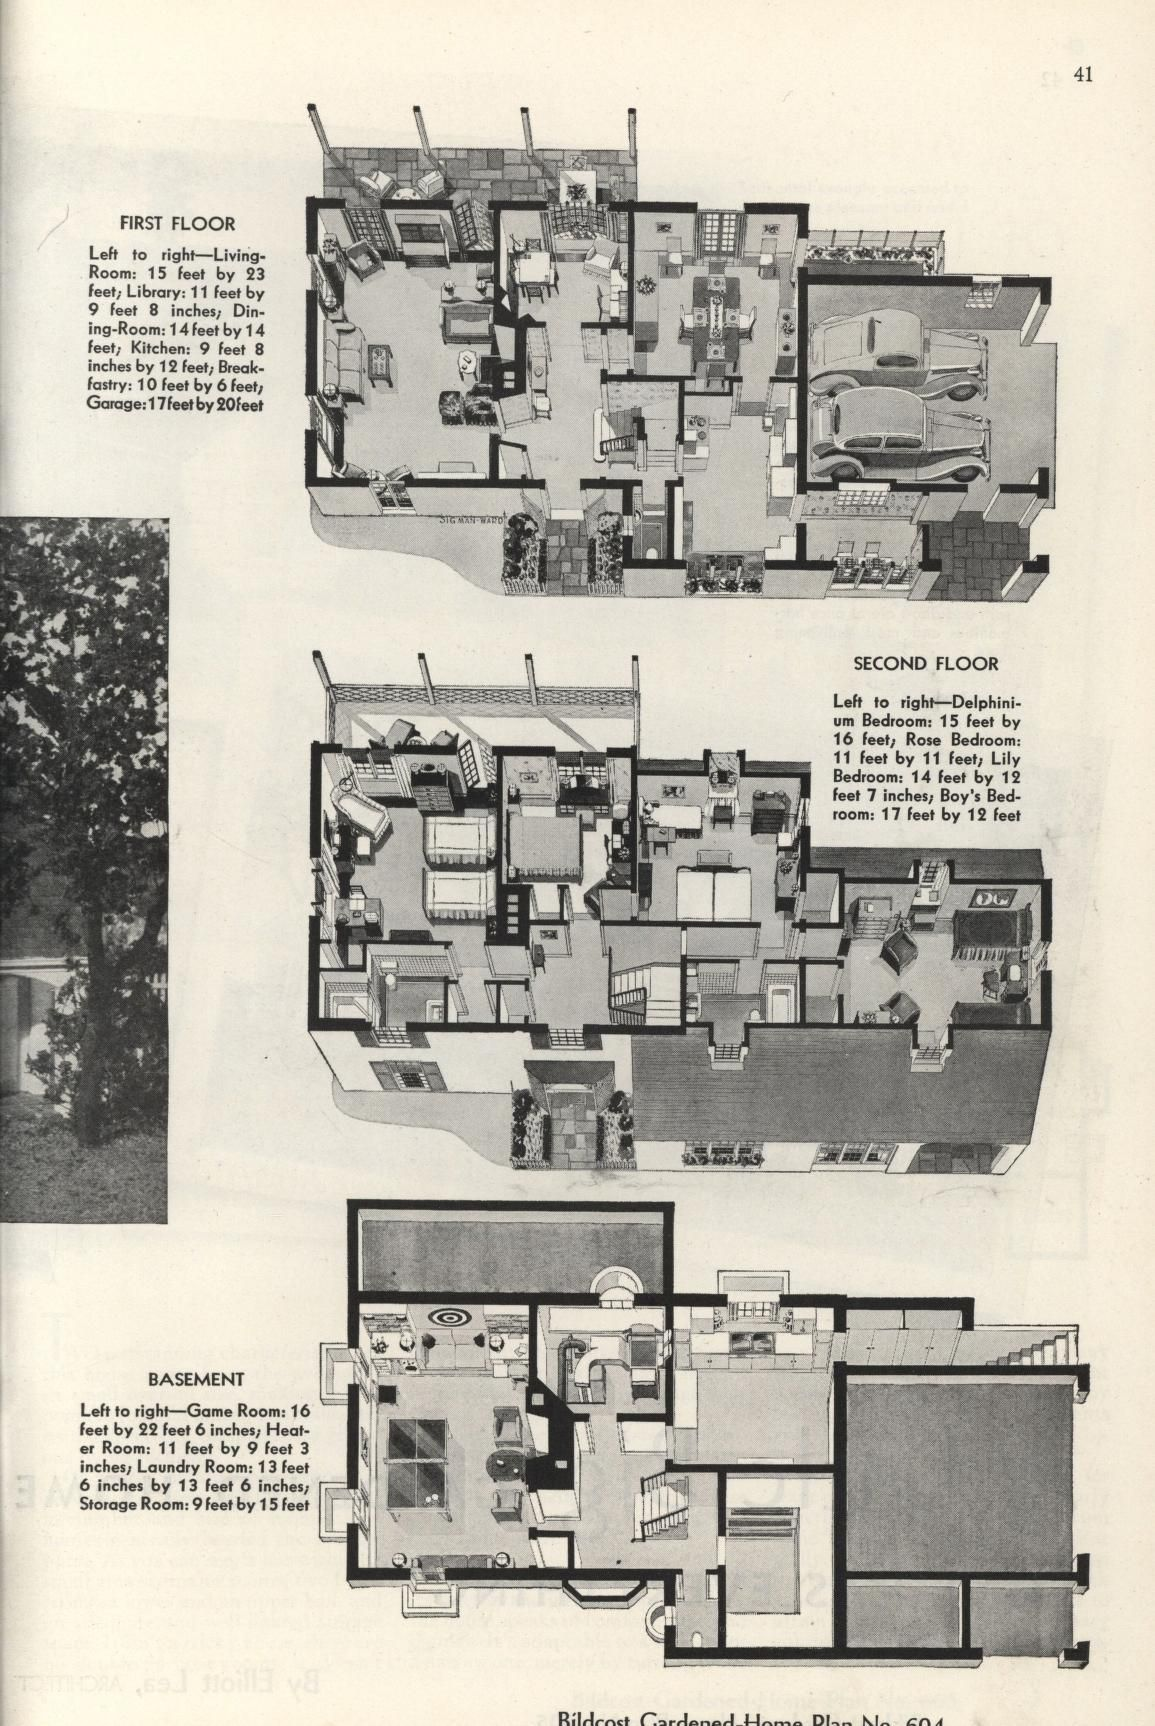 The Book Of Bildcost Gardened Home Plans Floor Plans House Plans Better Homes And Gardens